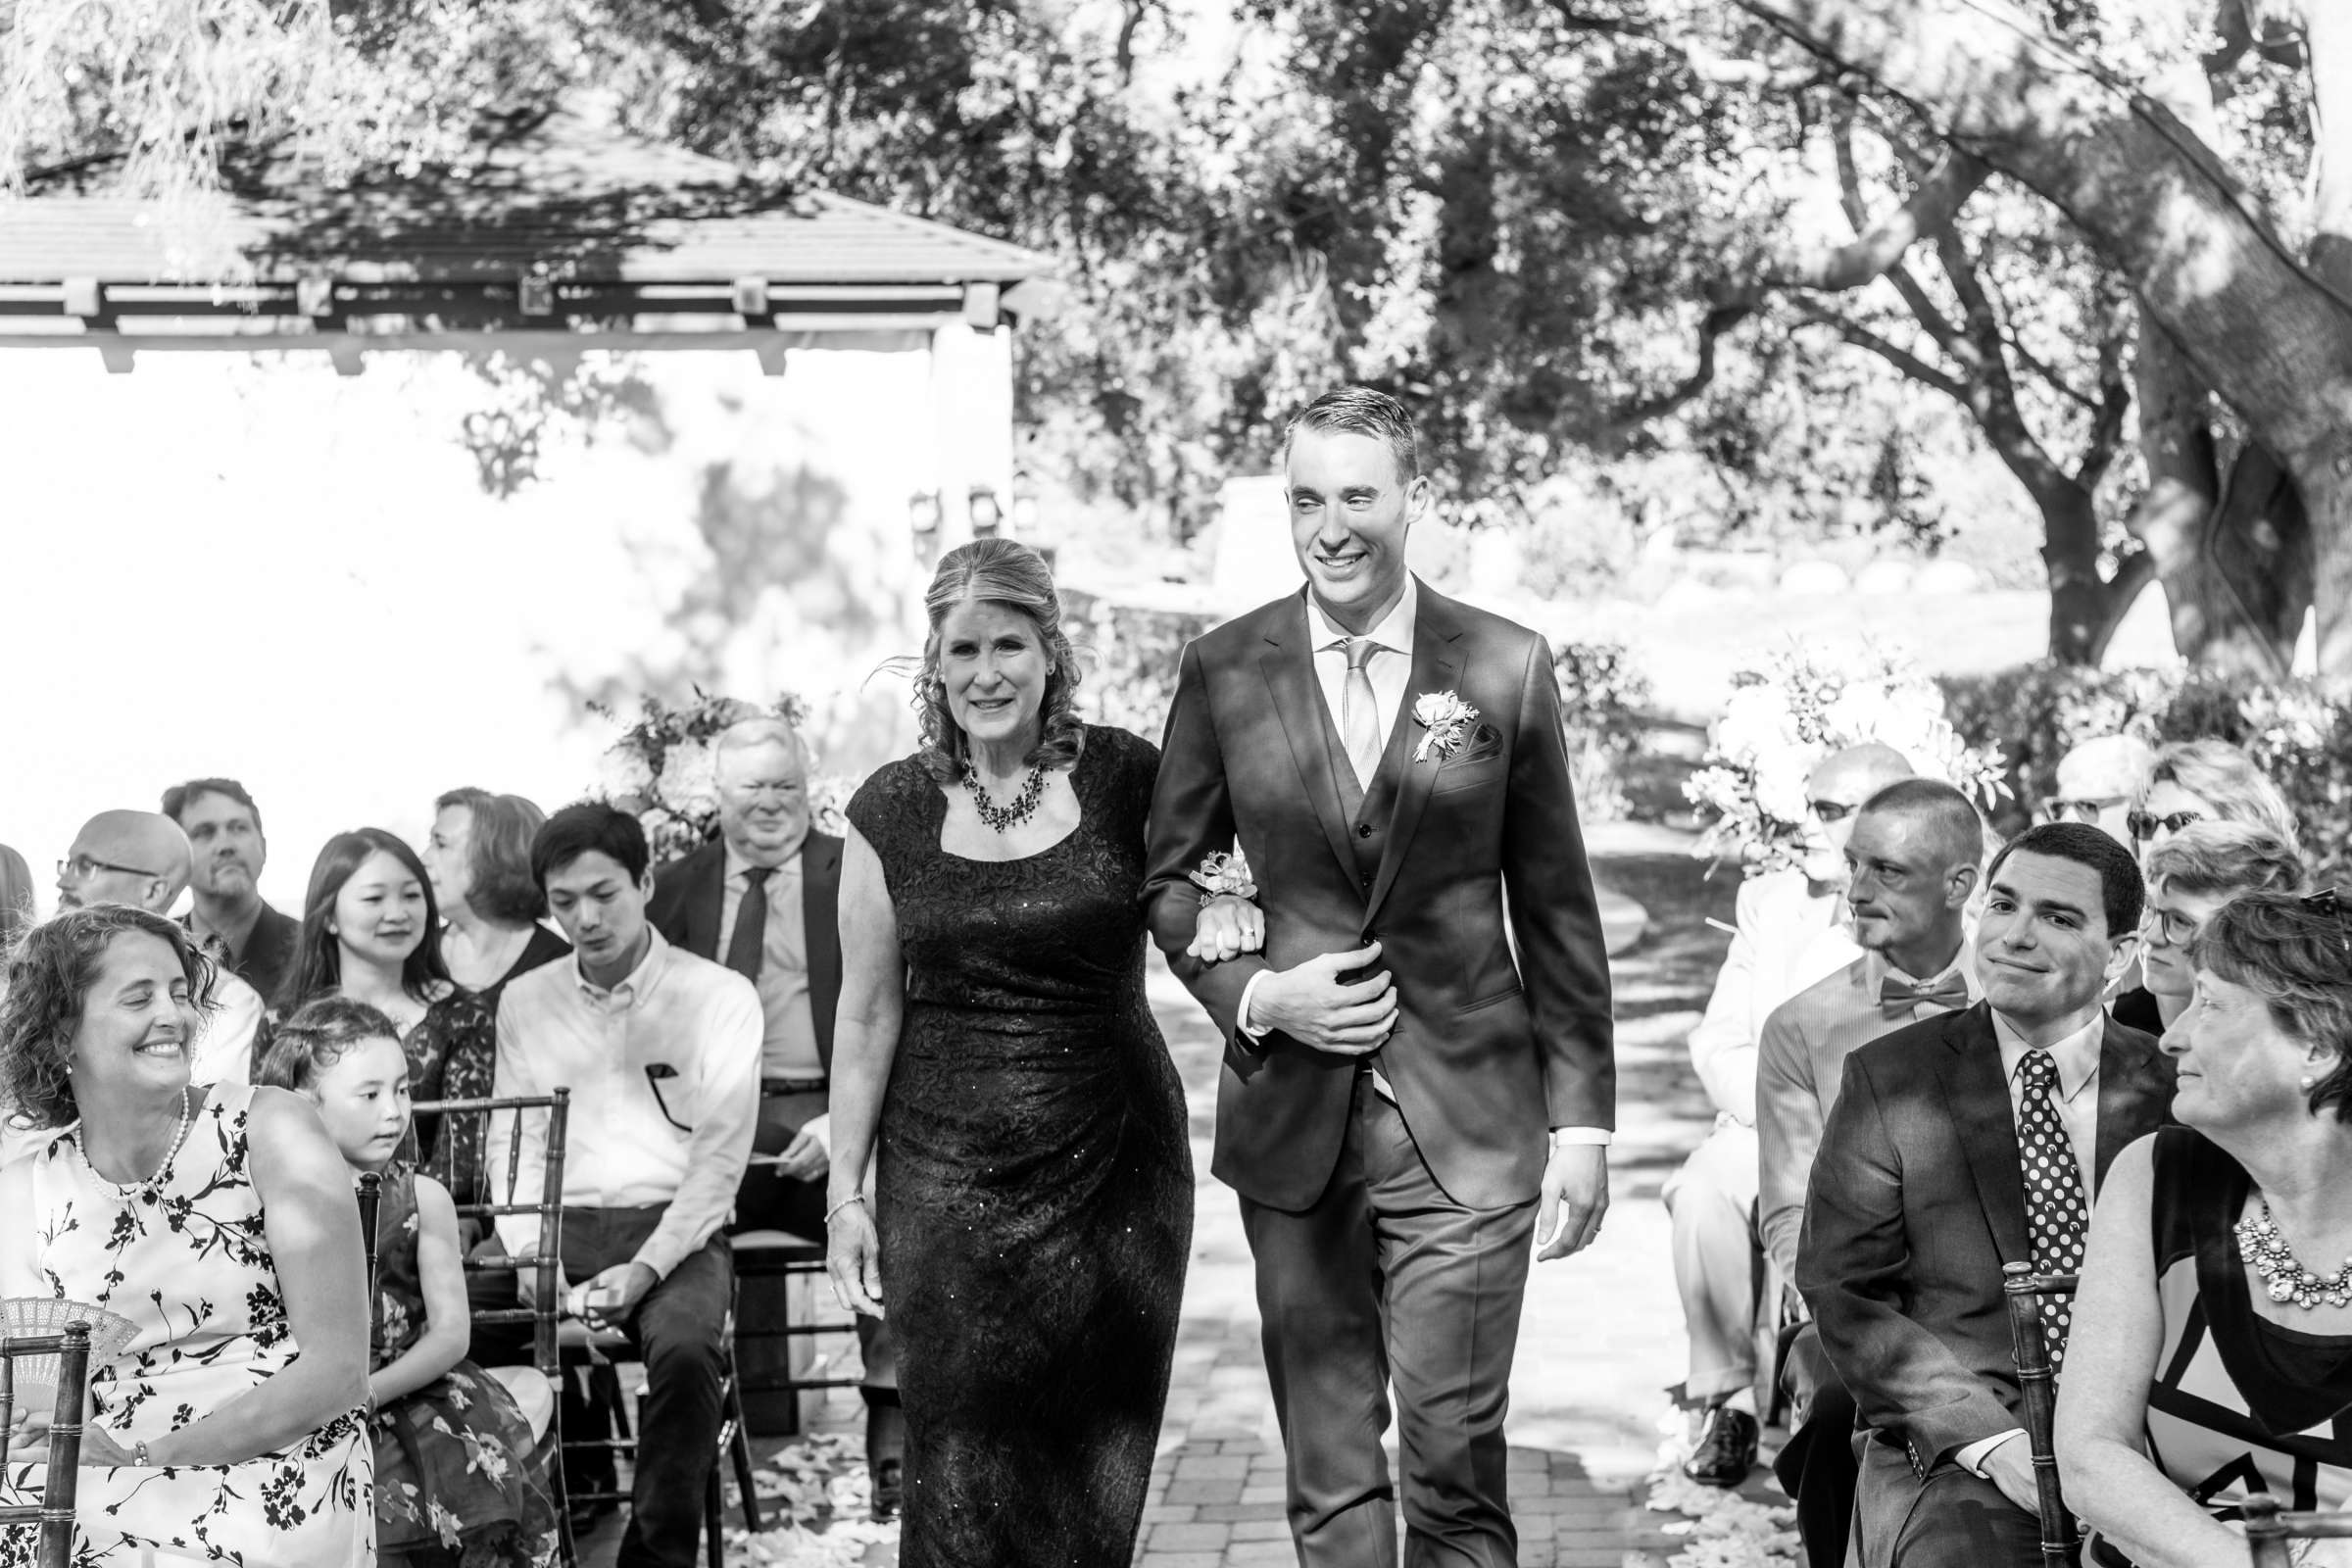 Mt Woodson Castle Wedding coordinated by I Do Weddings, Aya and Jared Wedding Photo #486929 by True Photography